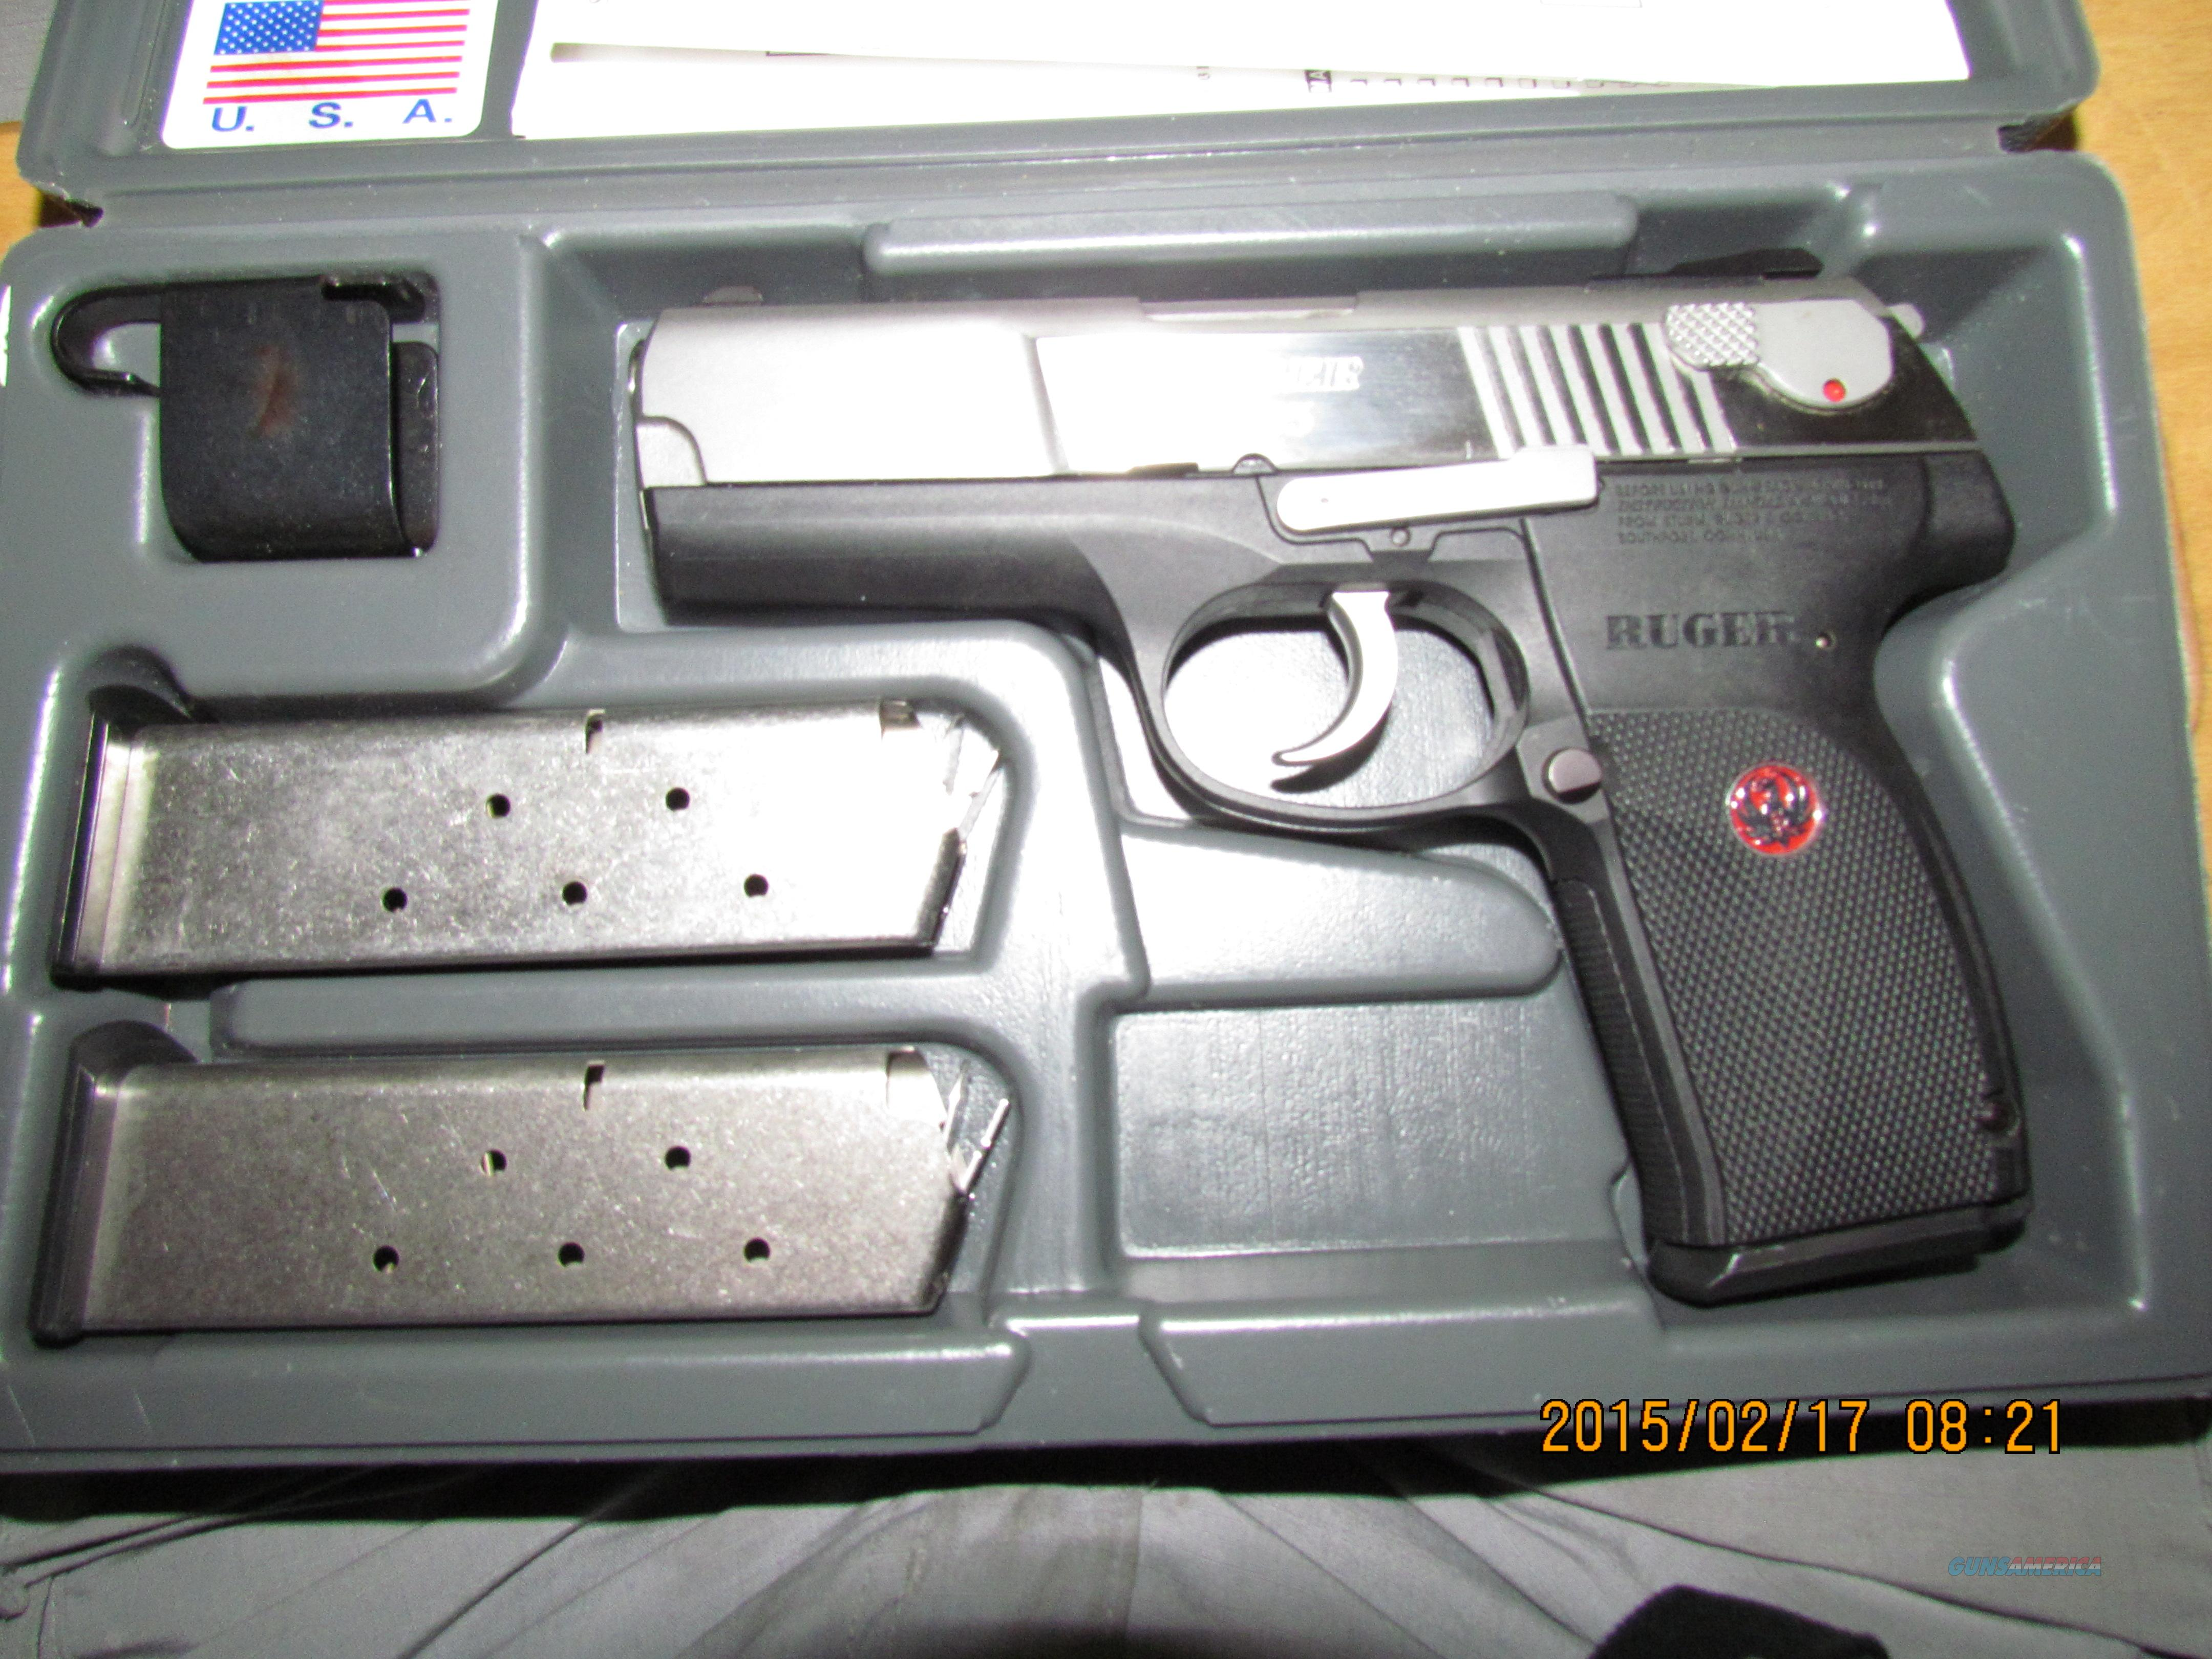 Ruger P 345 Stainless w/Case, Manual and Paperwork   Guns > Pistols > Ruger Semi-Auto Pistols > P-Series